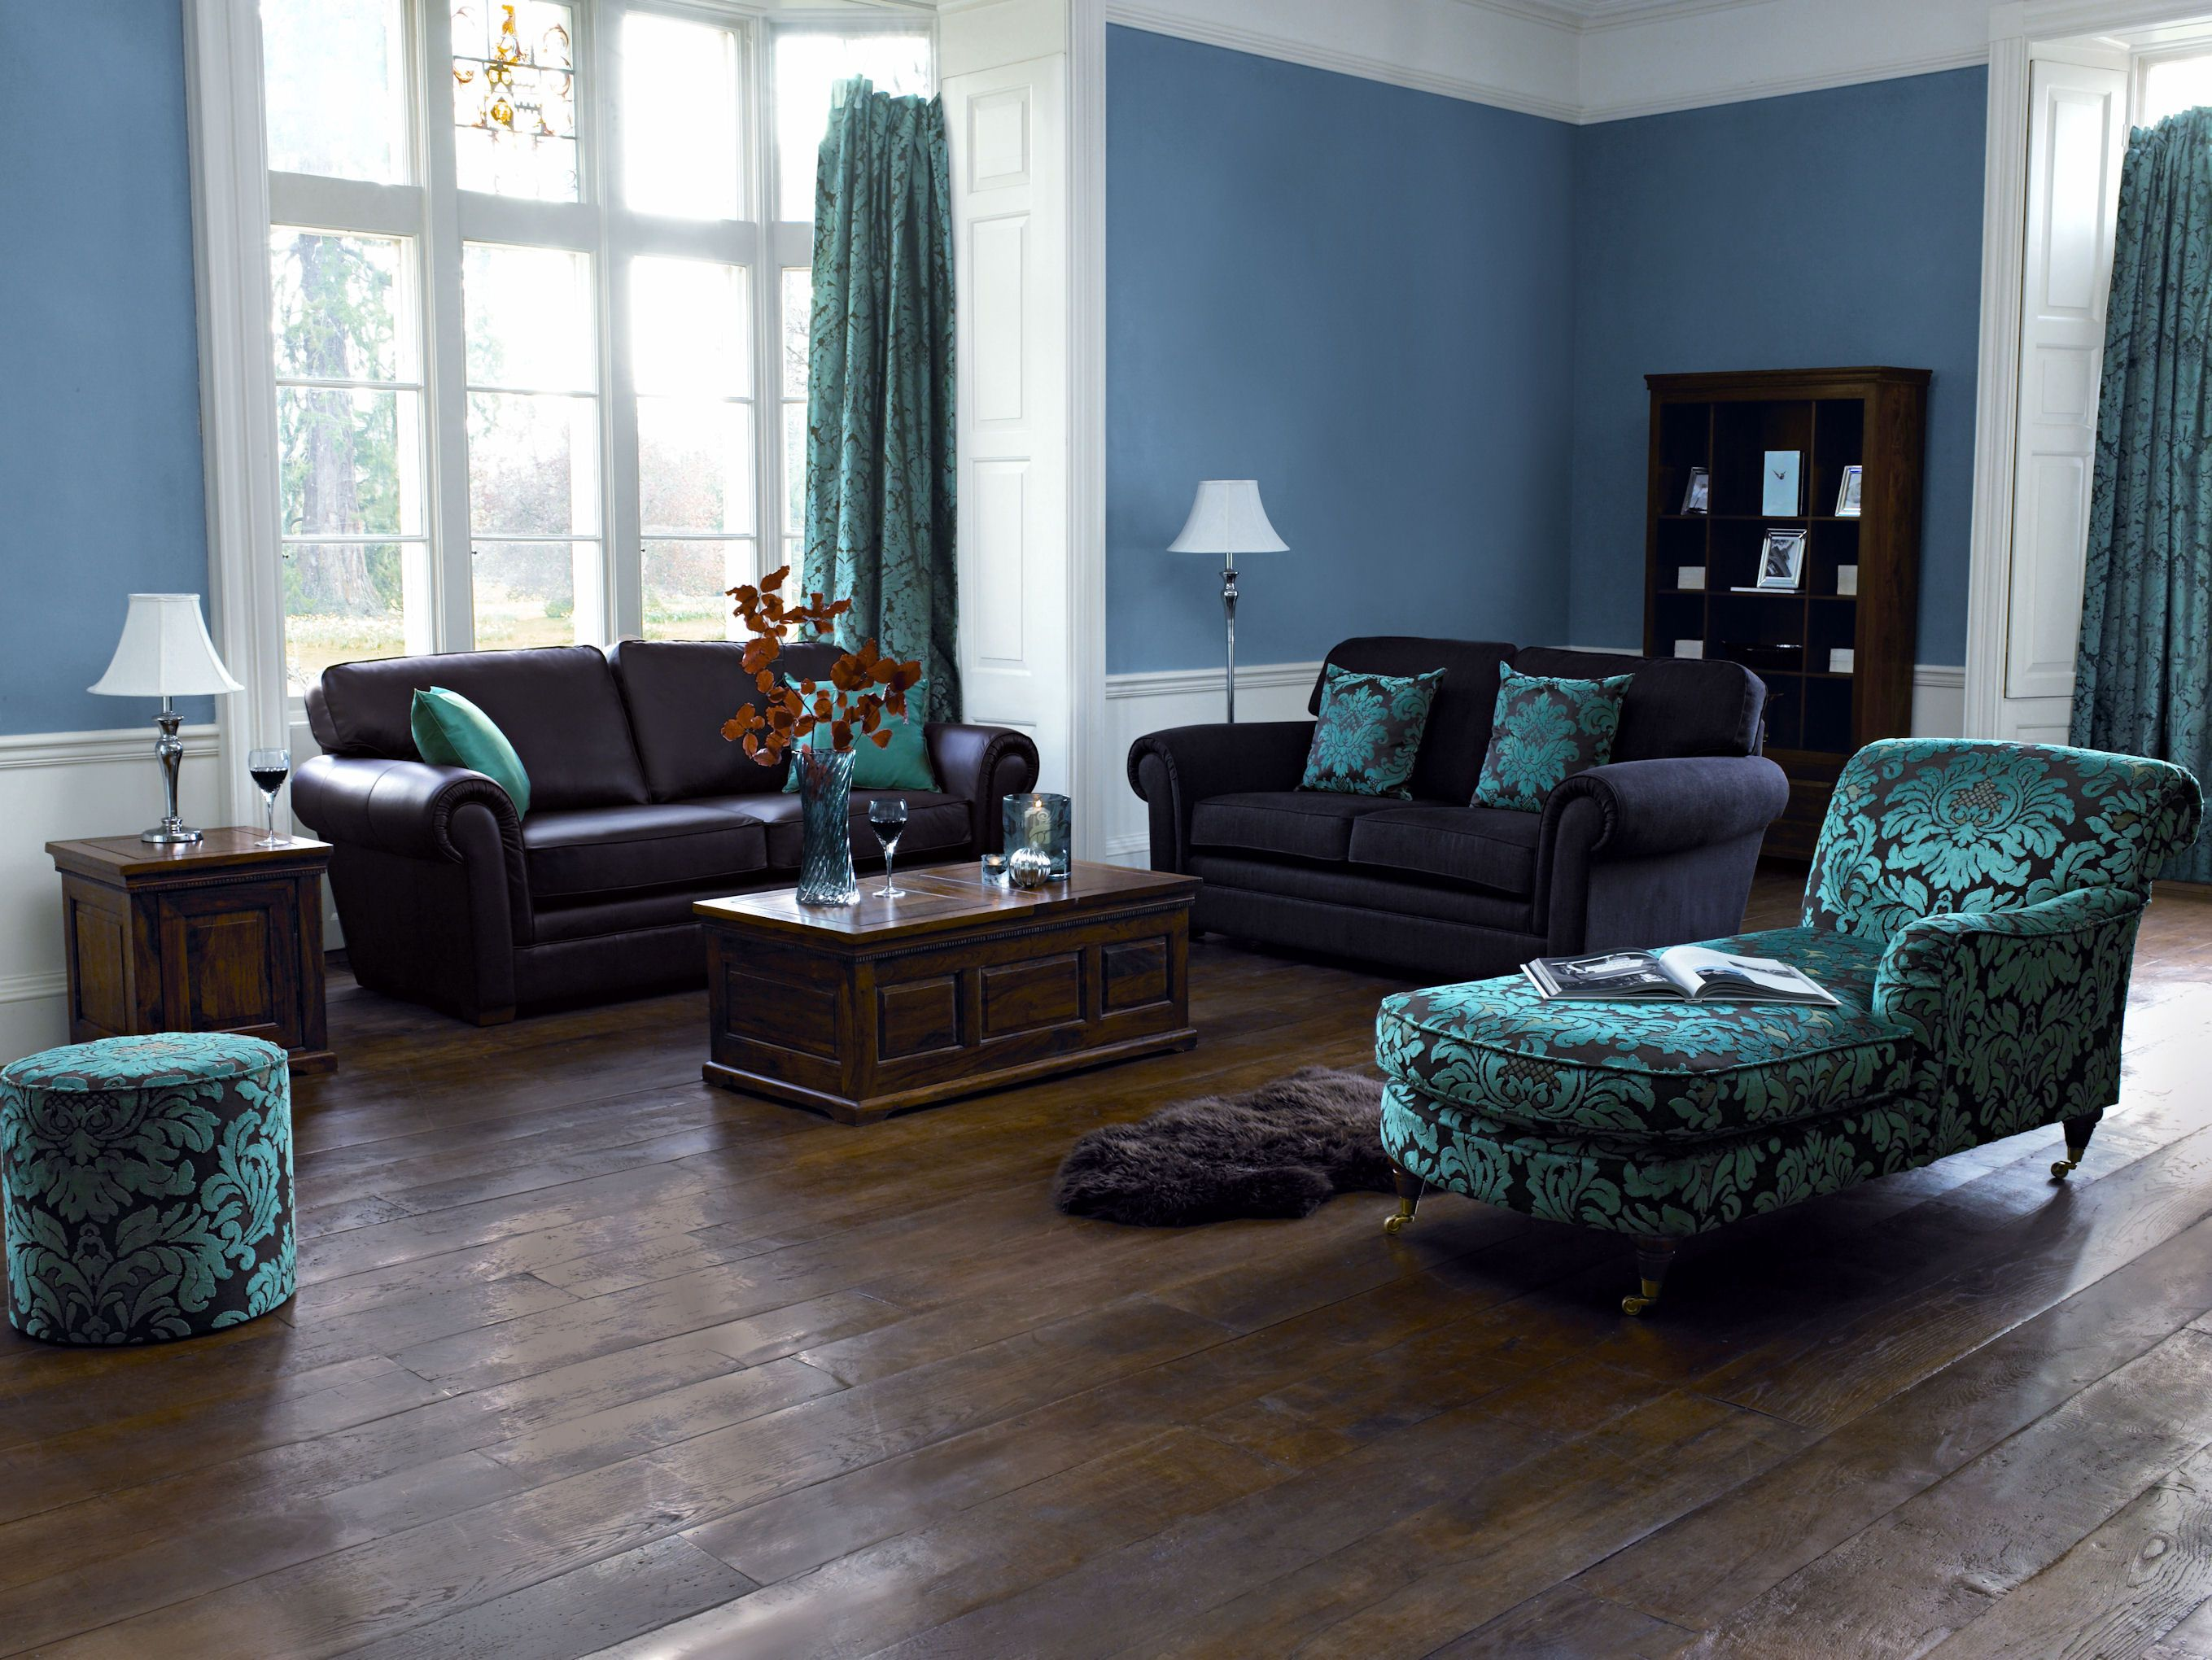 Blue Living Room Ideas With Various Theme Brown Leather Sofa And Floral Pillow Near Classic Standing Lamp Also Table On Dark